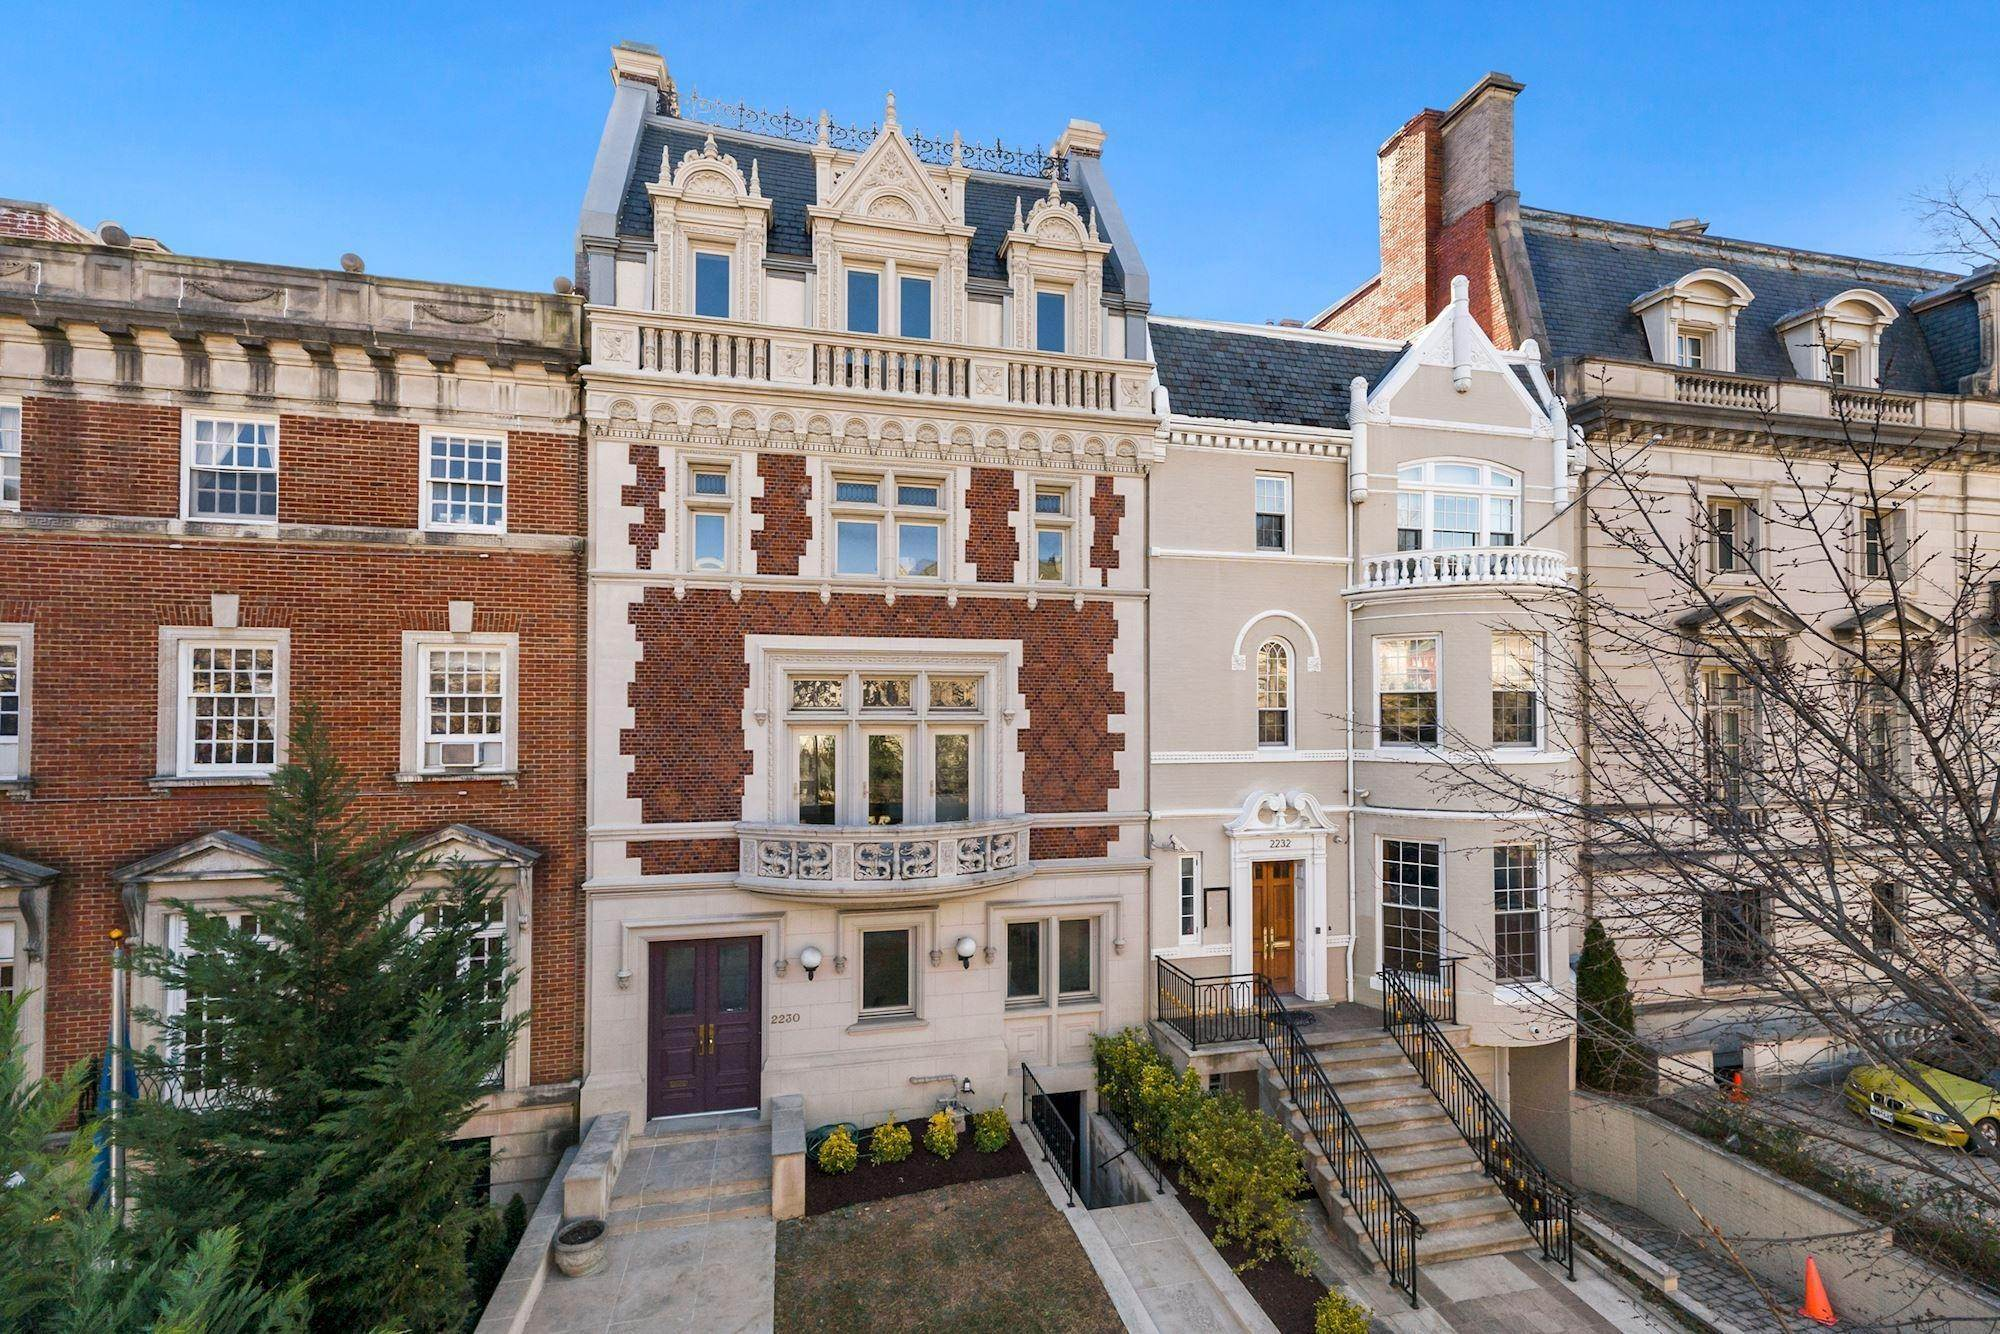 Property for Sale at Kalorama, Washington, District Of Columbia, 20008 United States